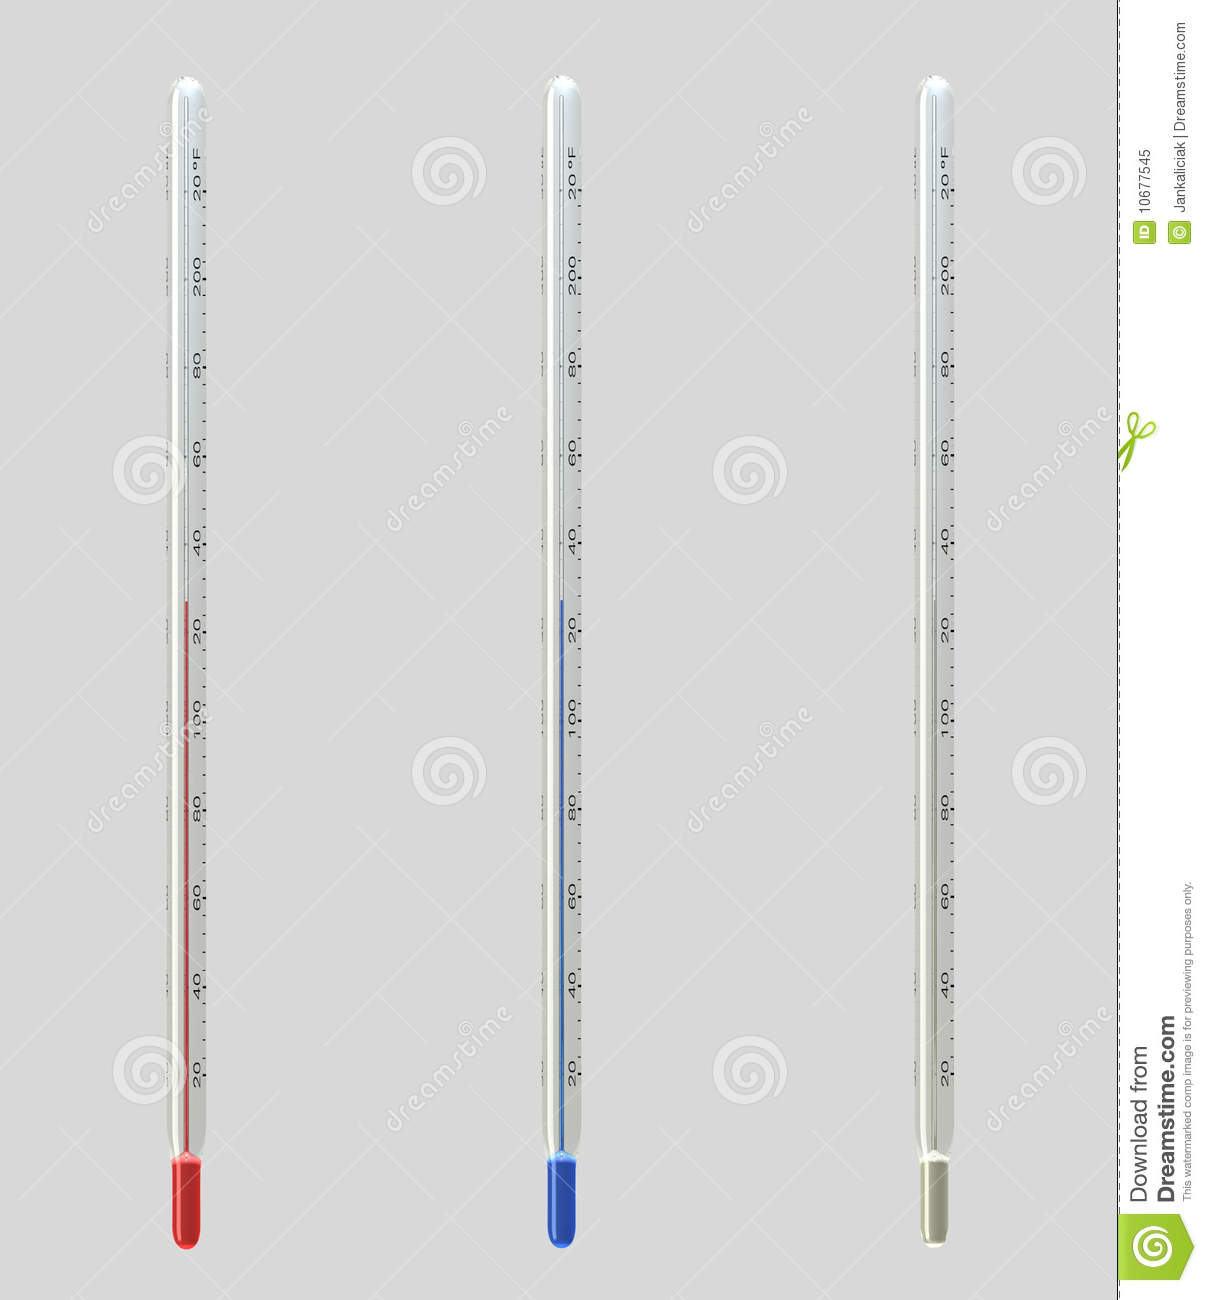 Upright Fahrenheit Thermometers Stock Illustration - Image ...